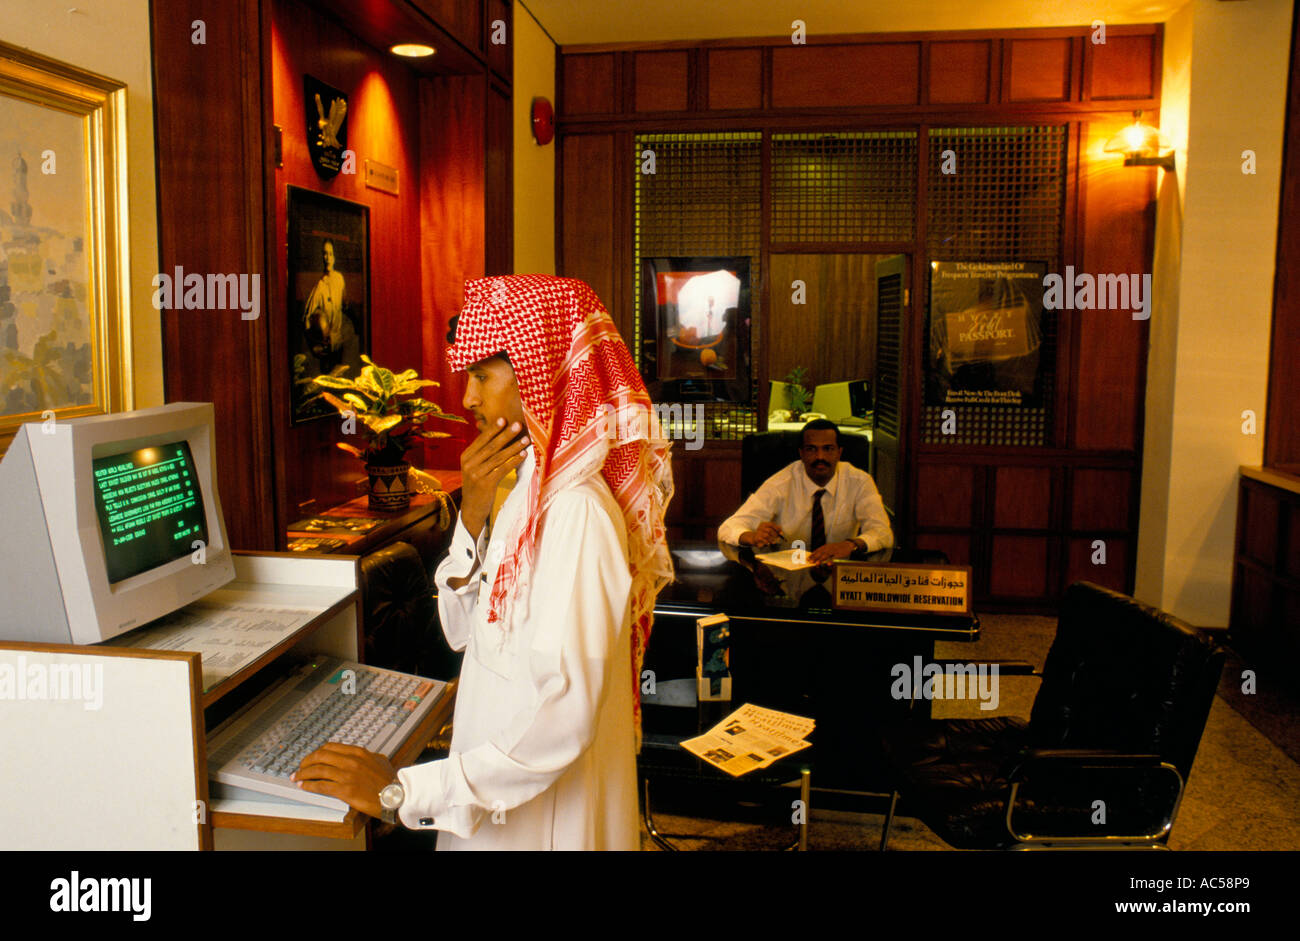 MAN LOOKING AT REUTERS TERMINAL SAUDI ARABIA 1989 - Stock Image